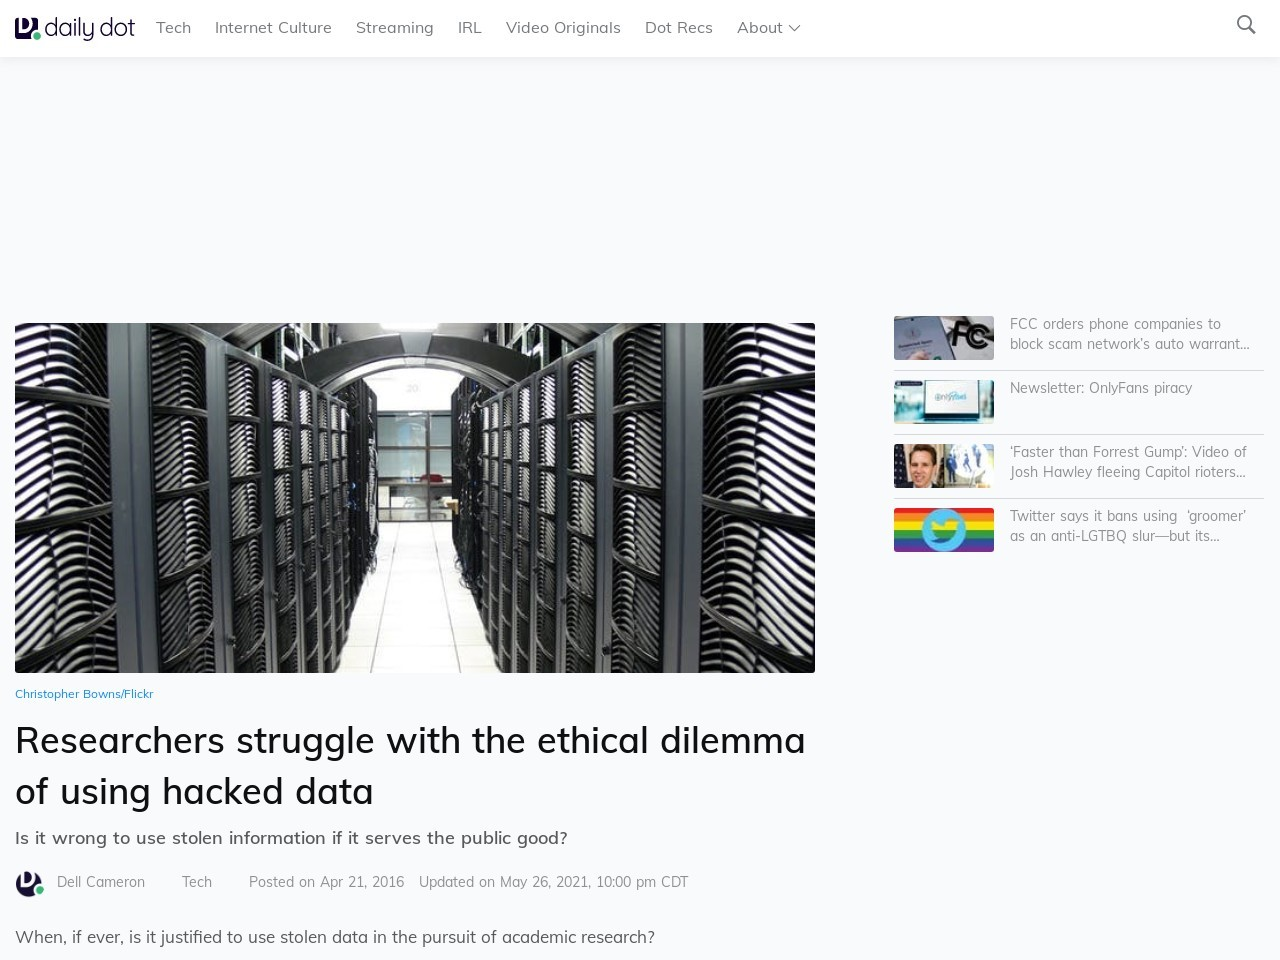 Researchers struggle with the ethical dilemma of using hacked data